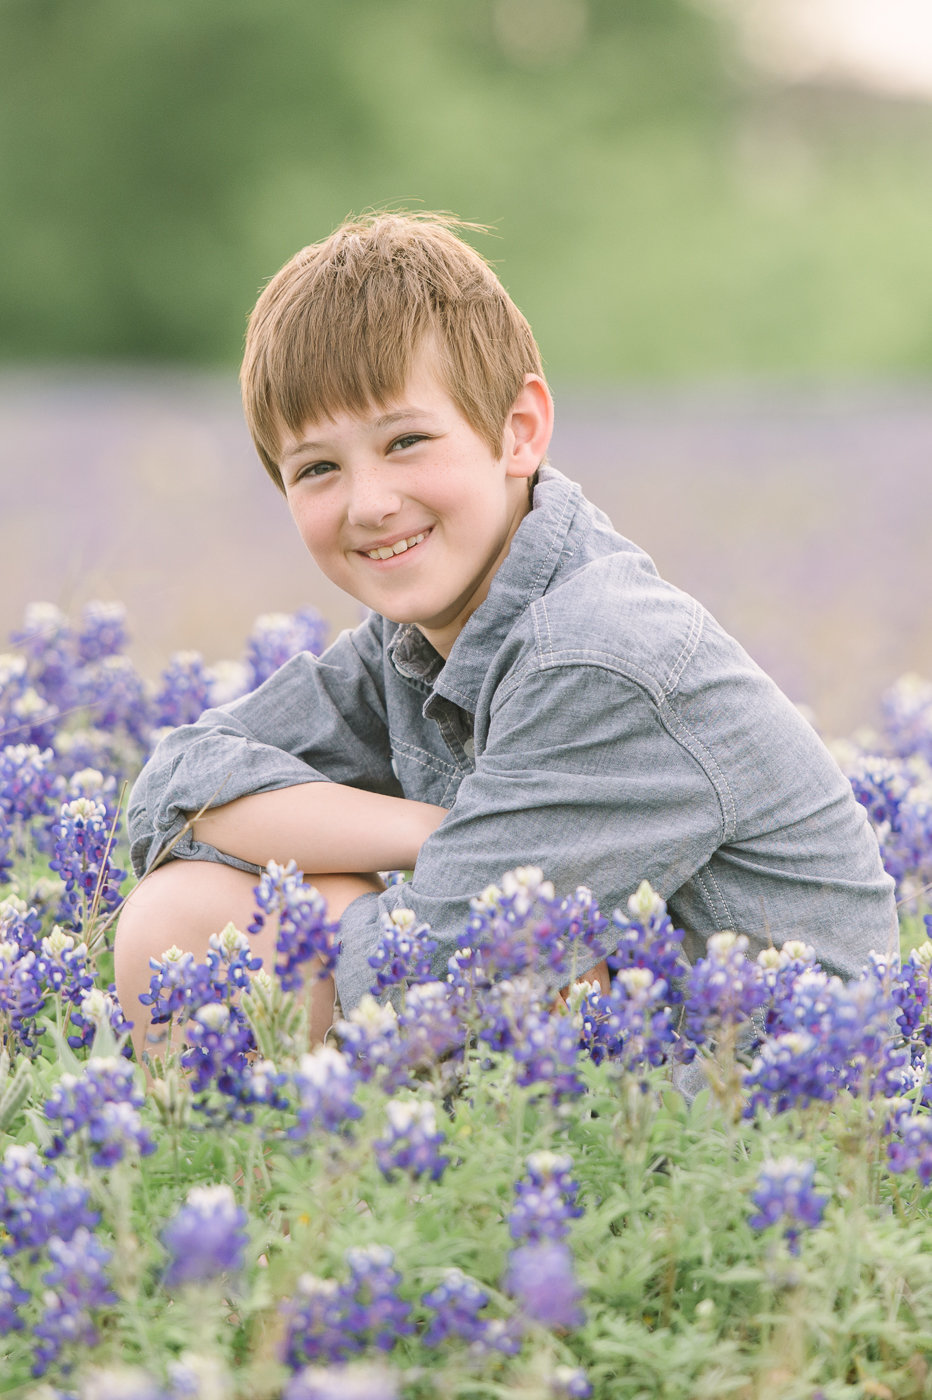 bluebonnet-texas-family-portrait-photographer-6